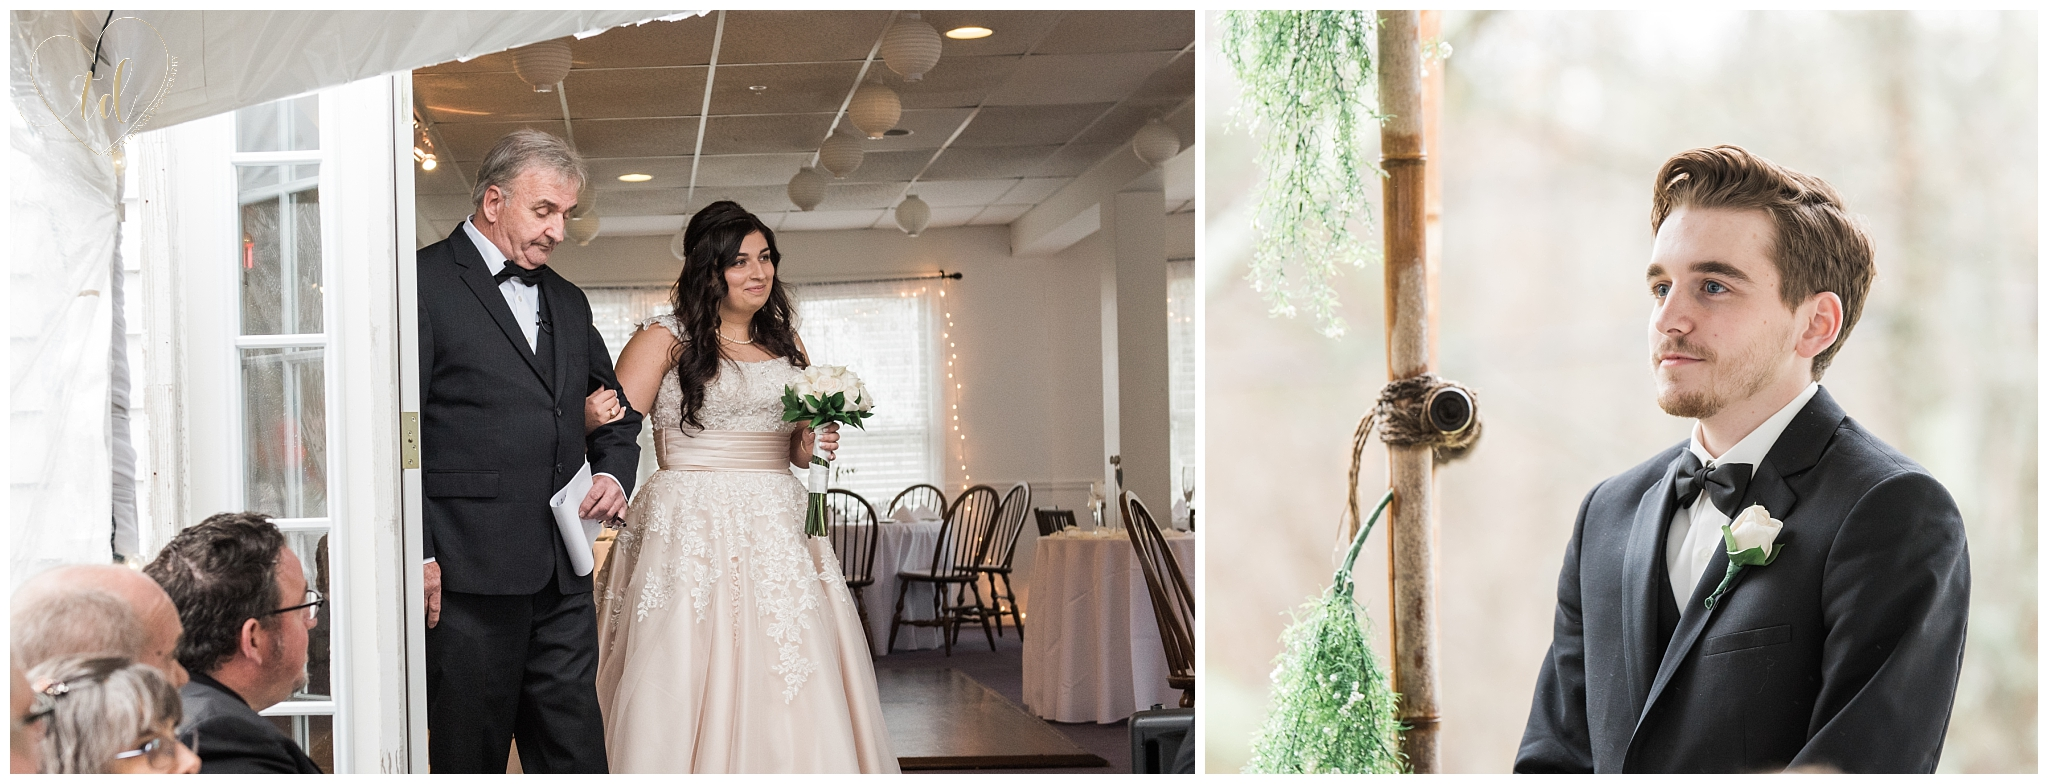 Groom sees bride for the first time at wedding ceremony.